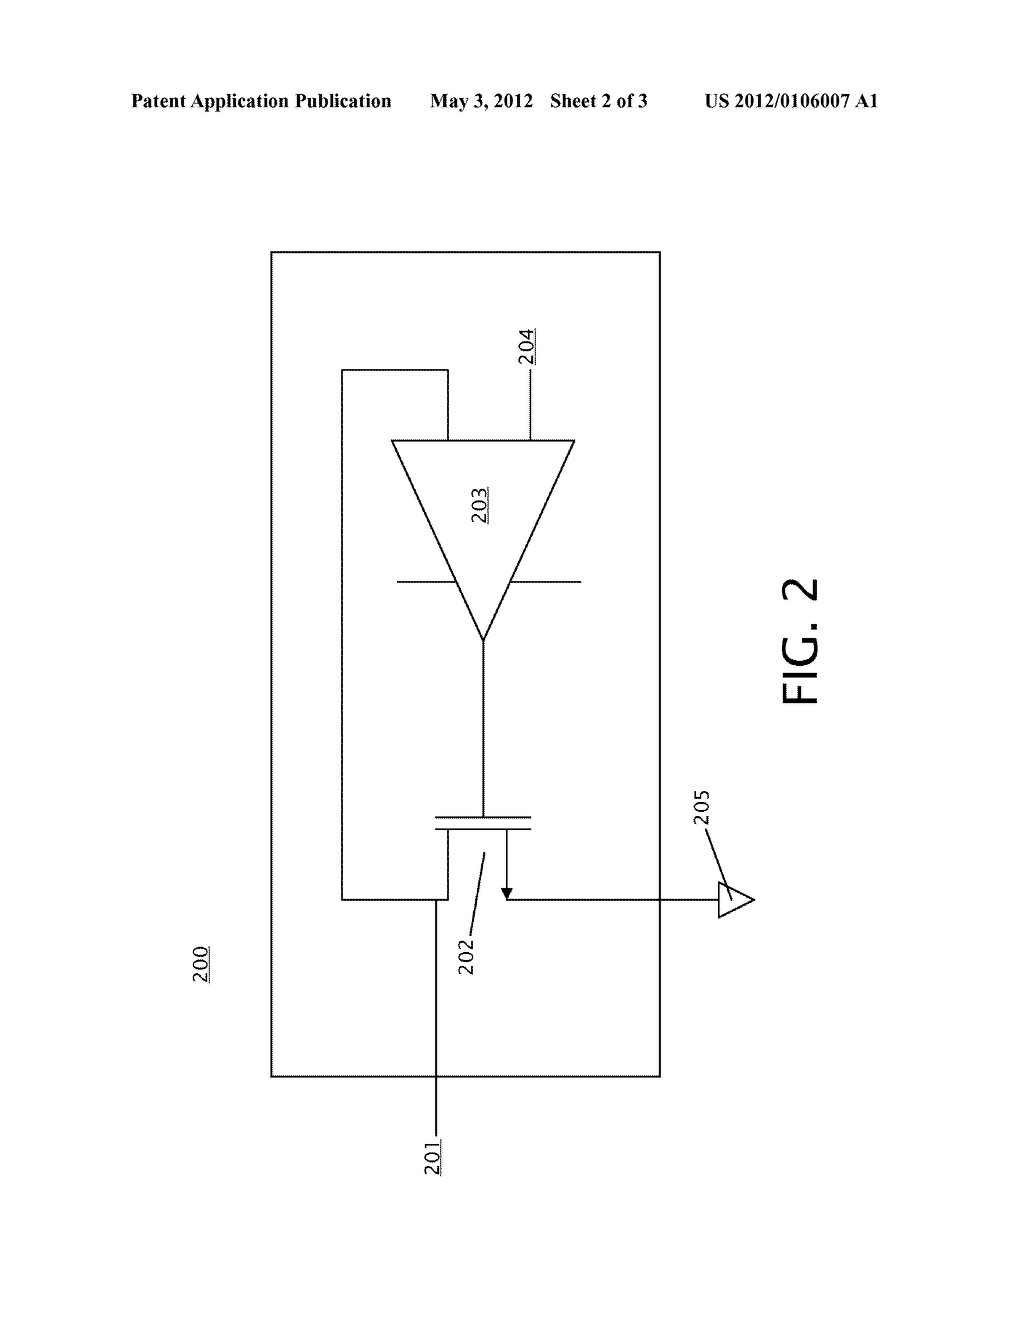 hight resolution of shunt regulator for overvoltage protection at transformer rectifier unit of electrical generating system diagram schematic and image 03